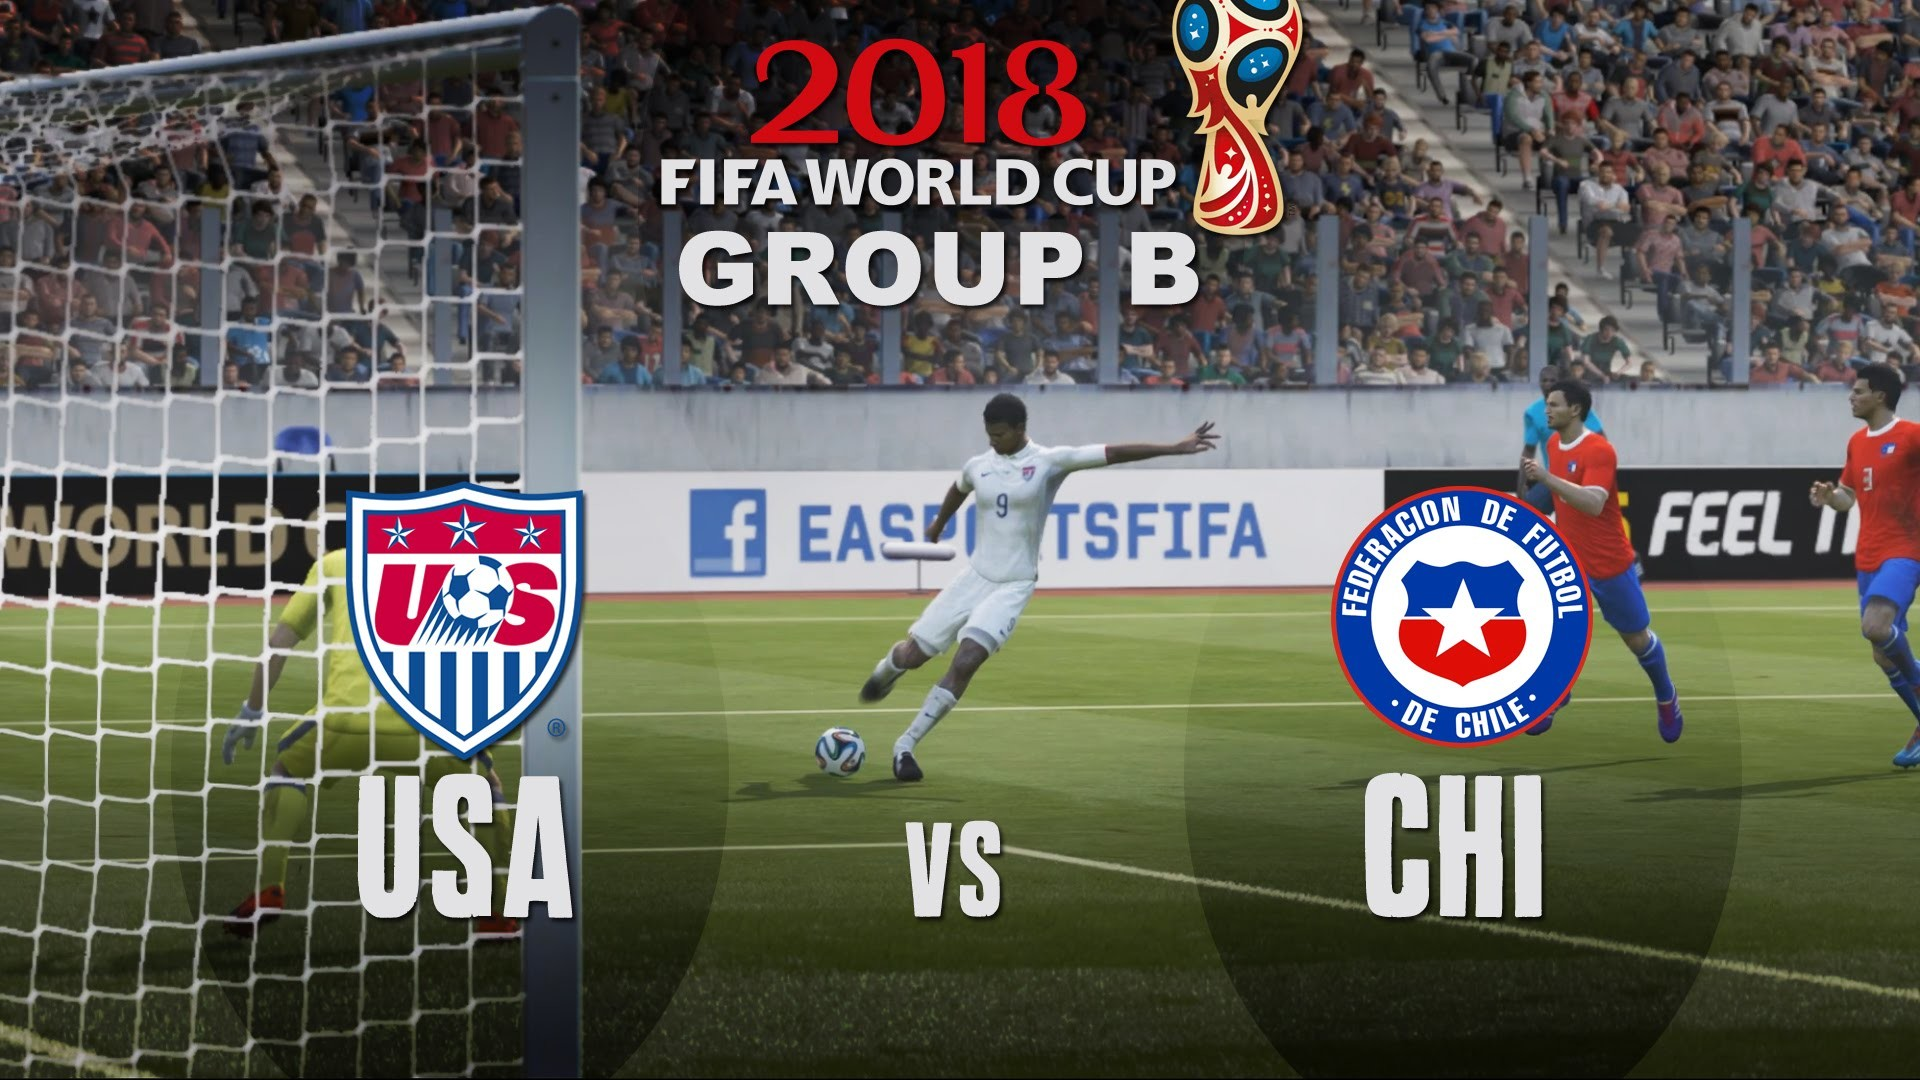 1920x1080 World Cup 2018 - USA vs Chile - Group B Match #3 - FIFA Gameplay - YouTube